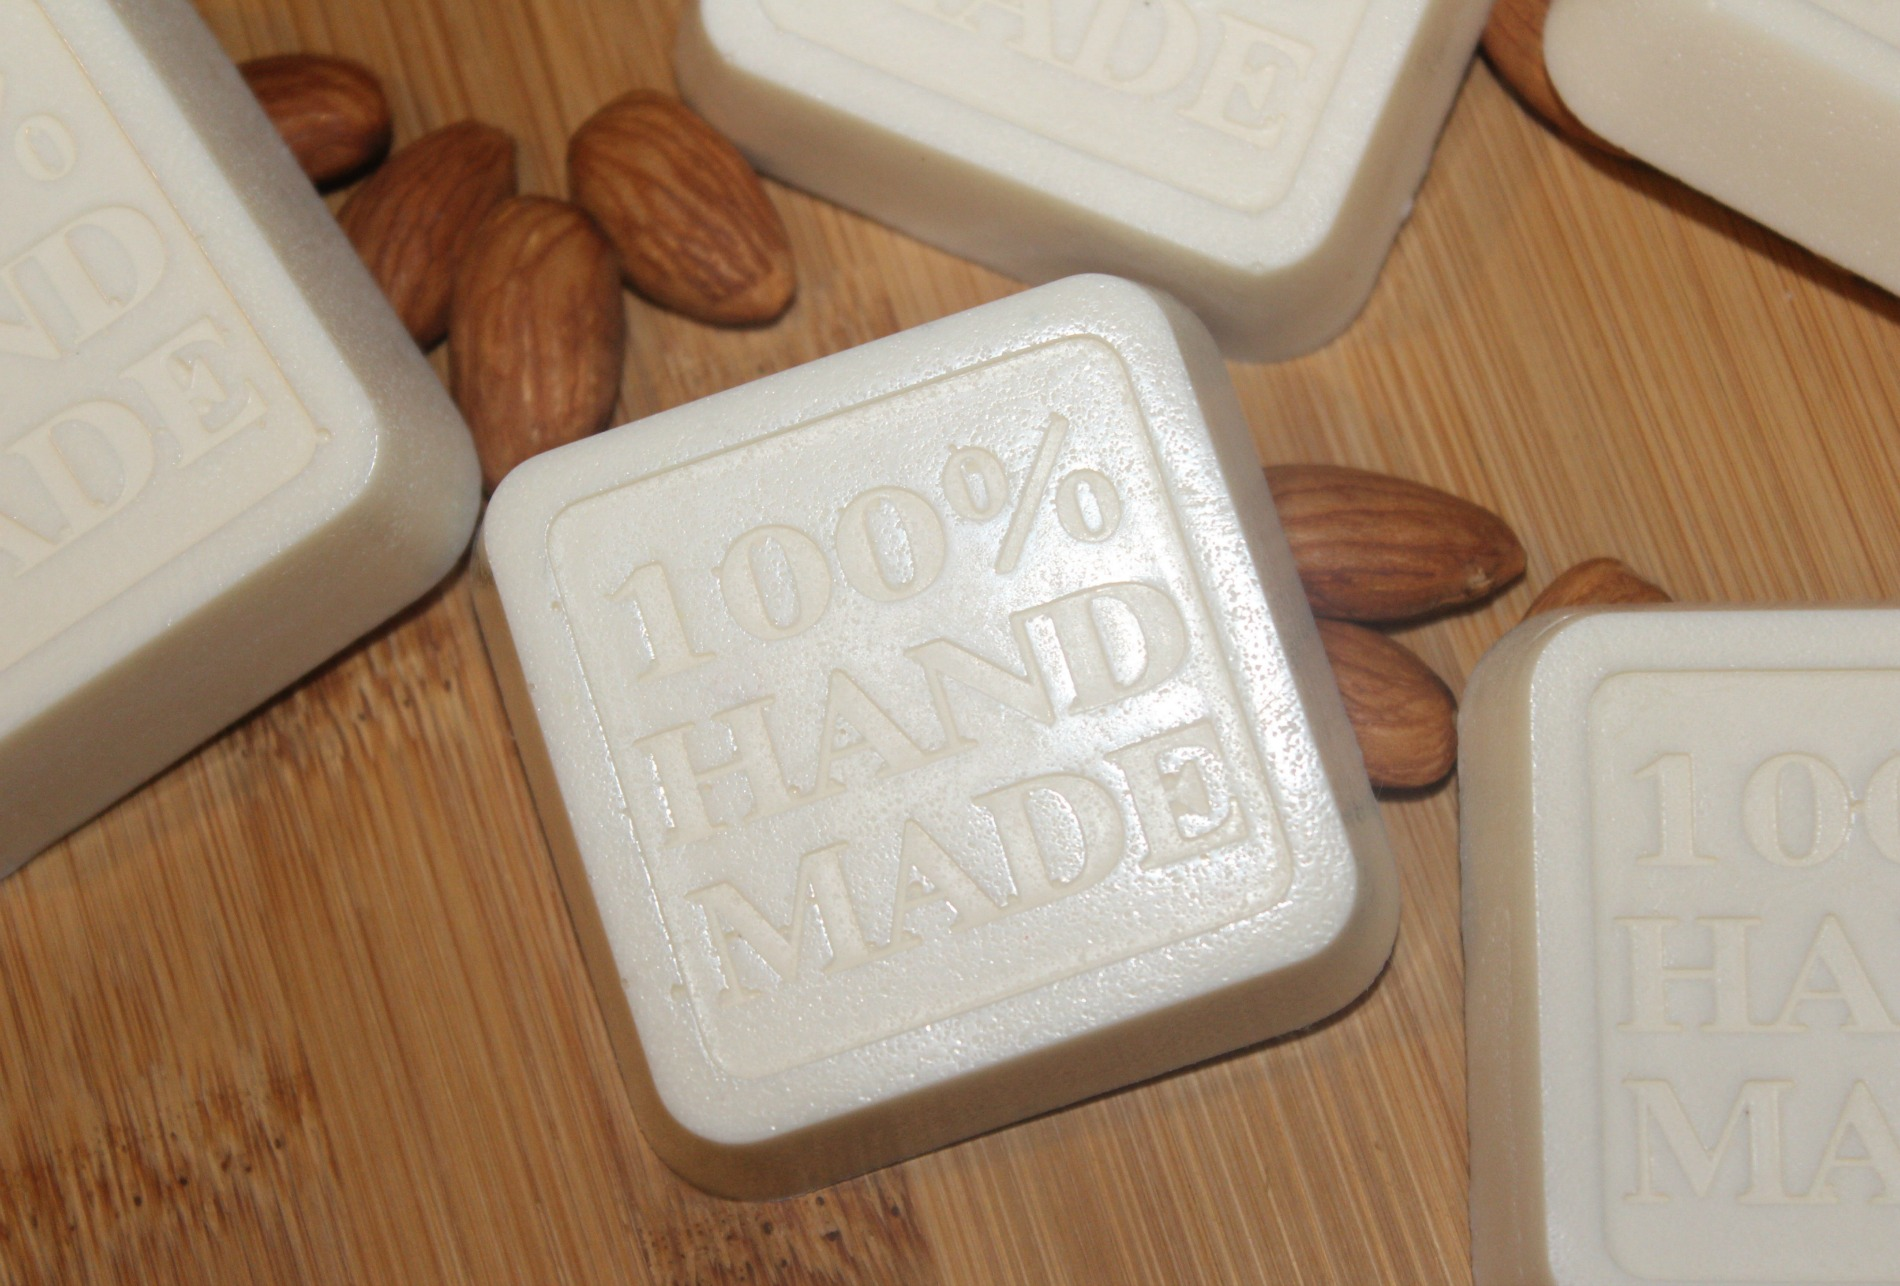 DIY Cedarwood and Almond soap for St Valentine